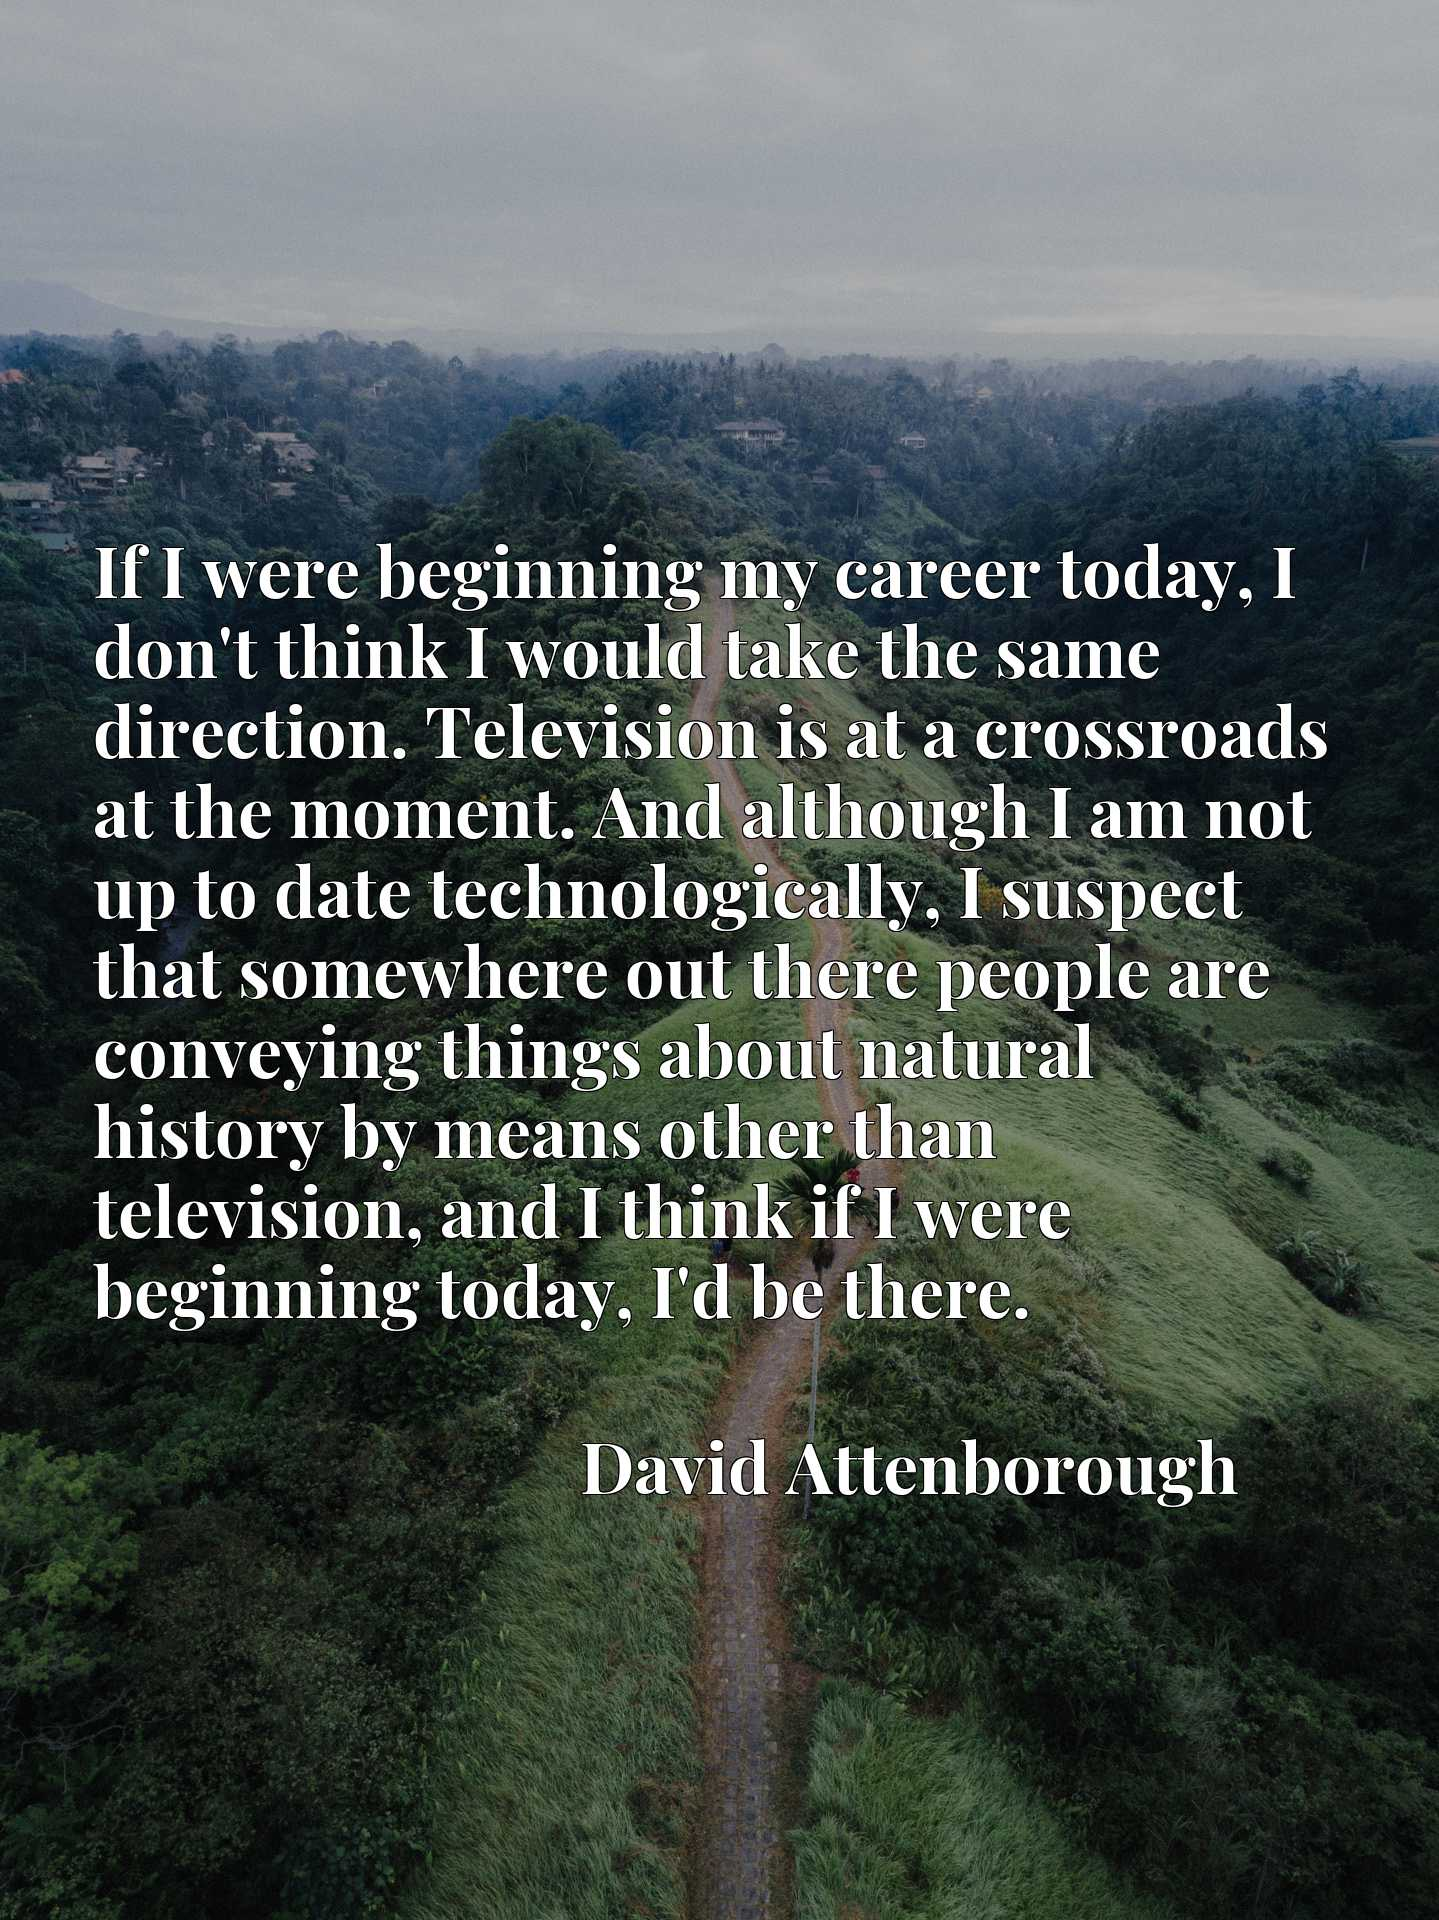 If I were beginning my career today, I don't think I would take the same direction. Television is at a crossroads at the moment. And although I am not up to date technologically, I suspect that somewhere out there people are conveying things about natural history by means other than television, and I think if I were beginning today, I'd be there.